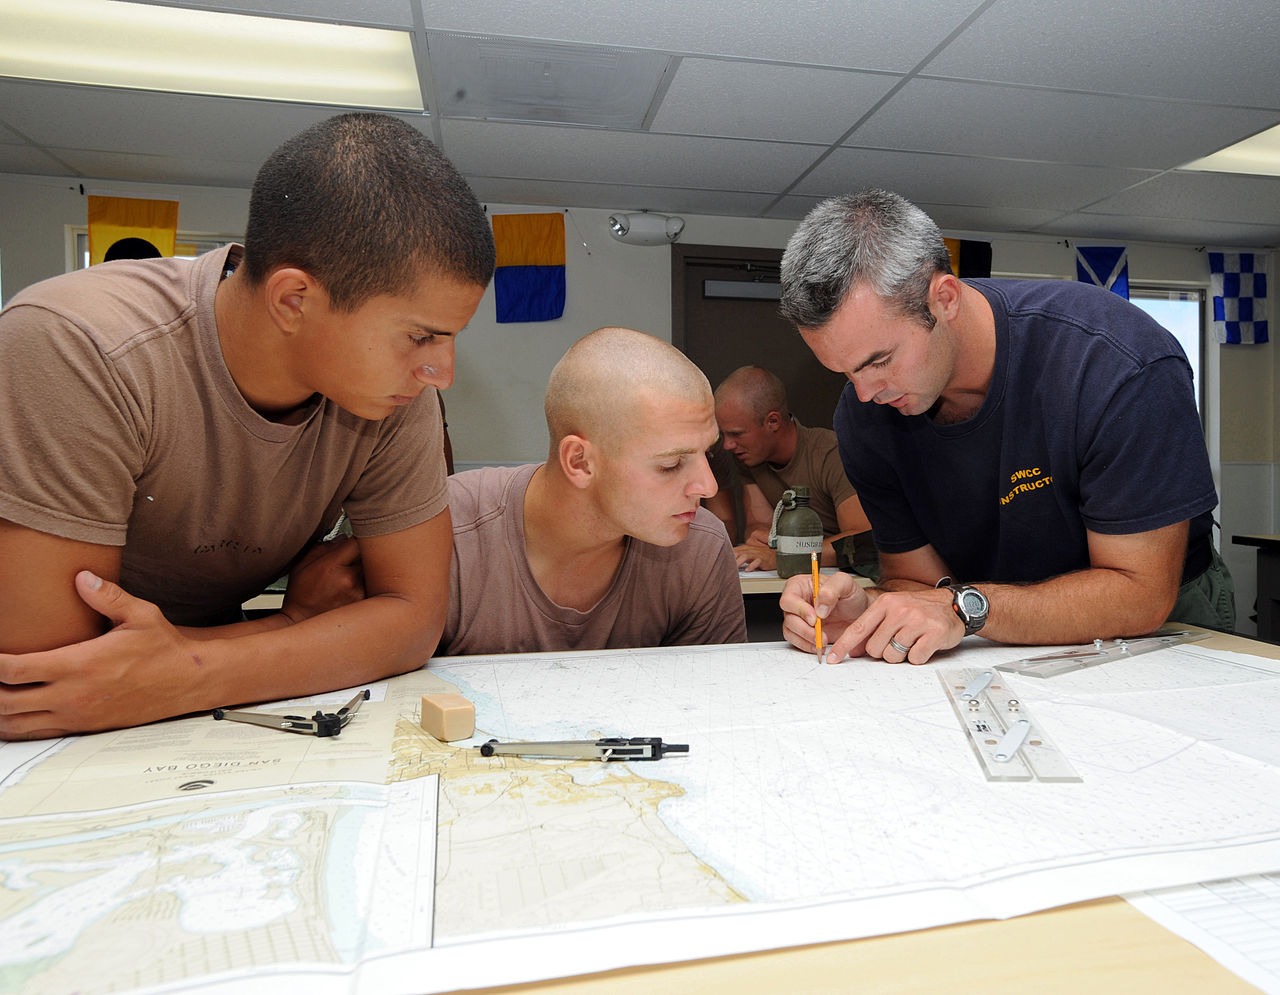 Chart Holder For Classroom: US Navy 080729-N-6552M-035 Special Boat Operator 1st Class ,Chart